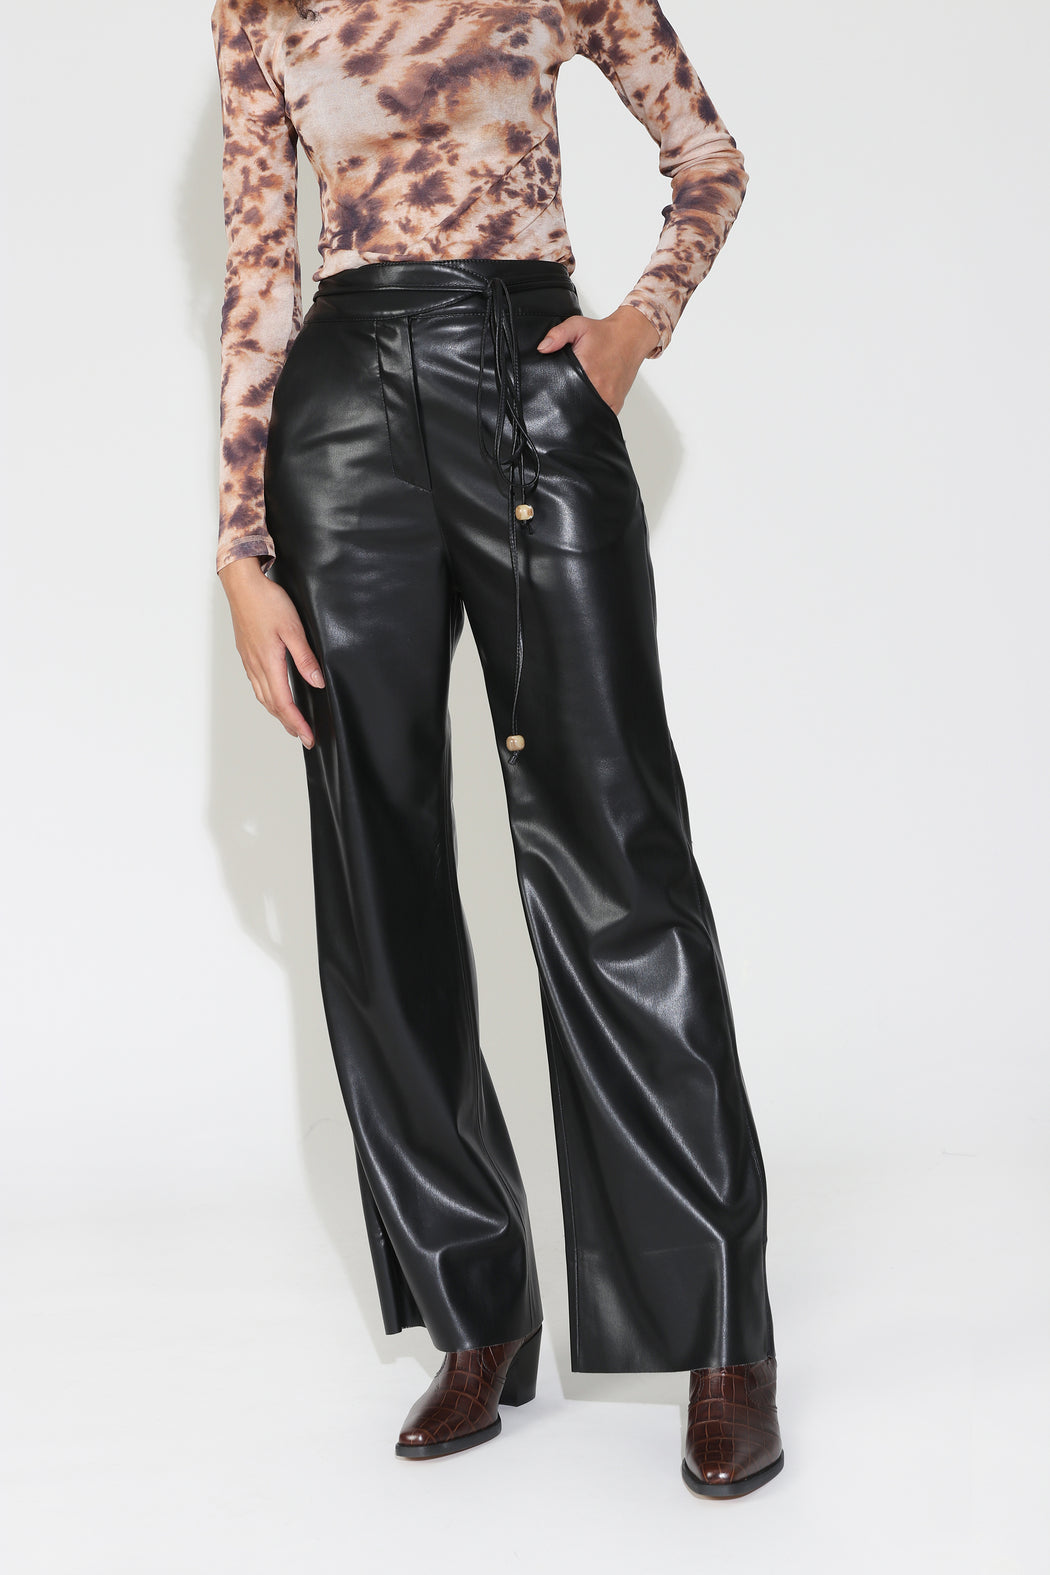 Nanushka Chimo Vegan Leather Belted Pants in Black